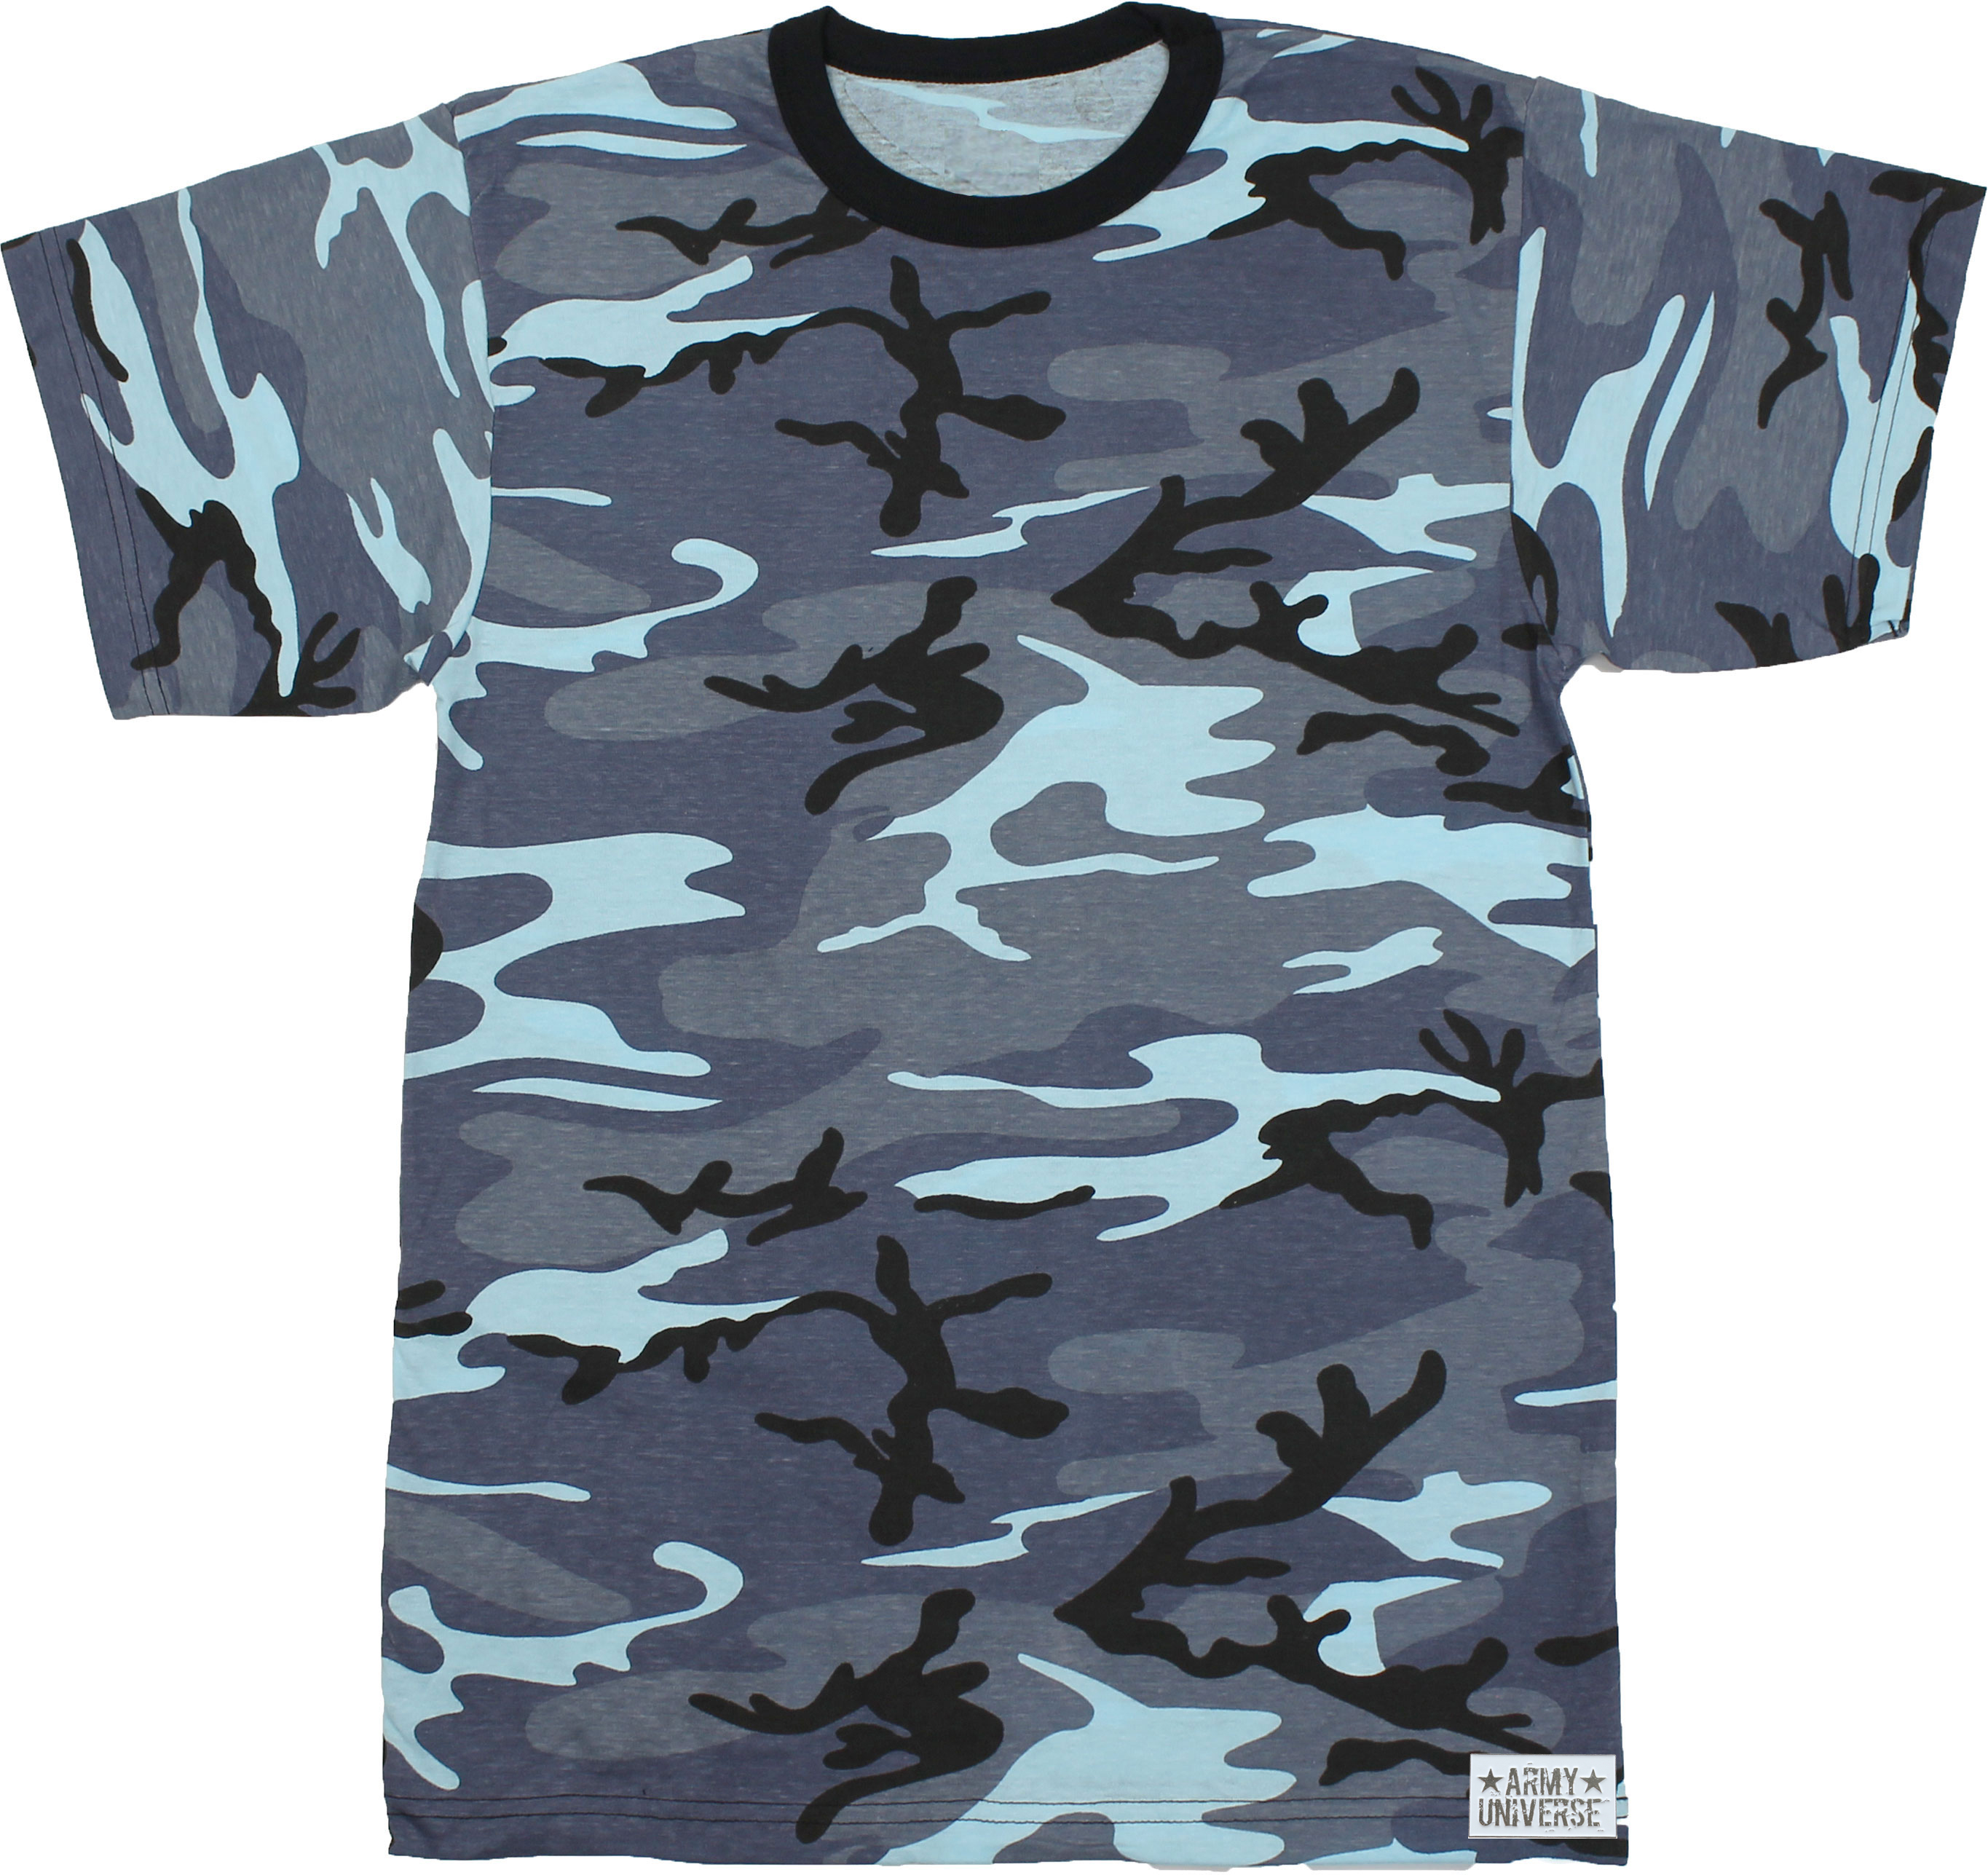 Army Universe - Blue Camouflage Short Sleeve T-Shirt with ARMY UNIVERSE Pin  - Size Small (33